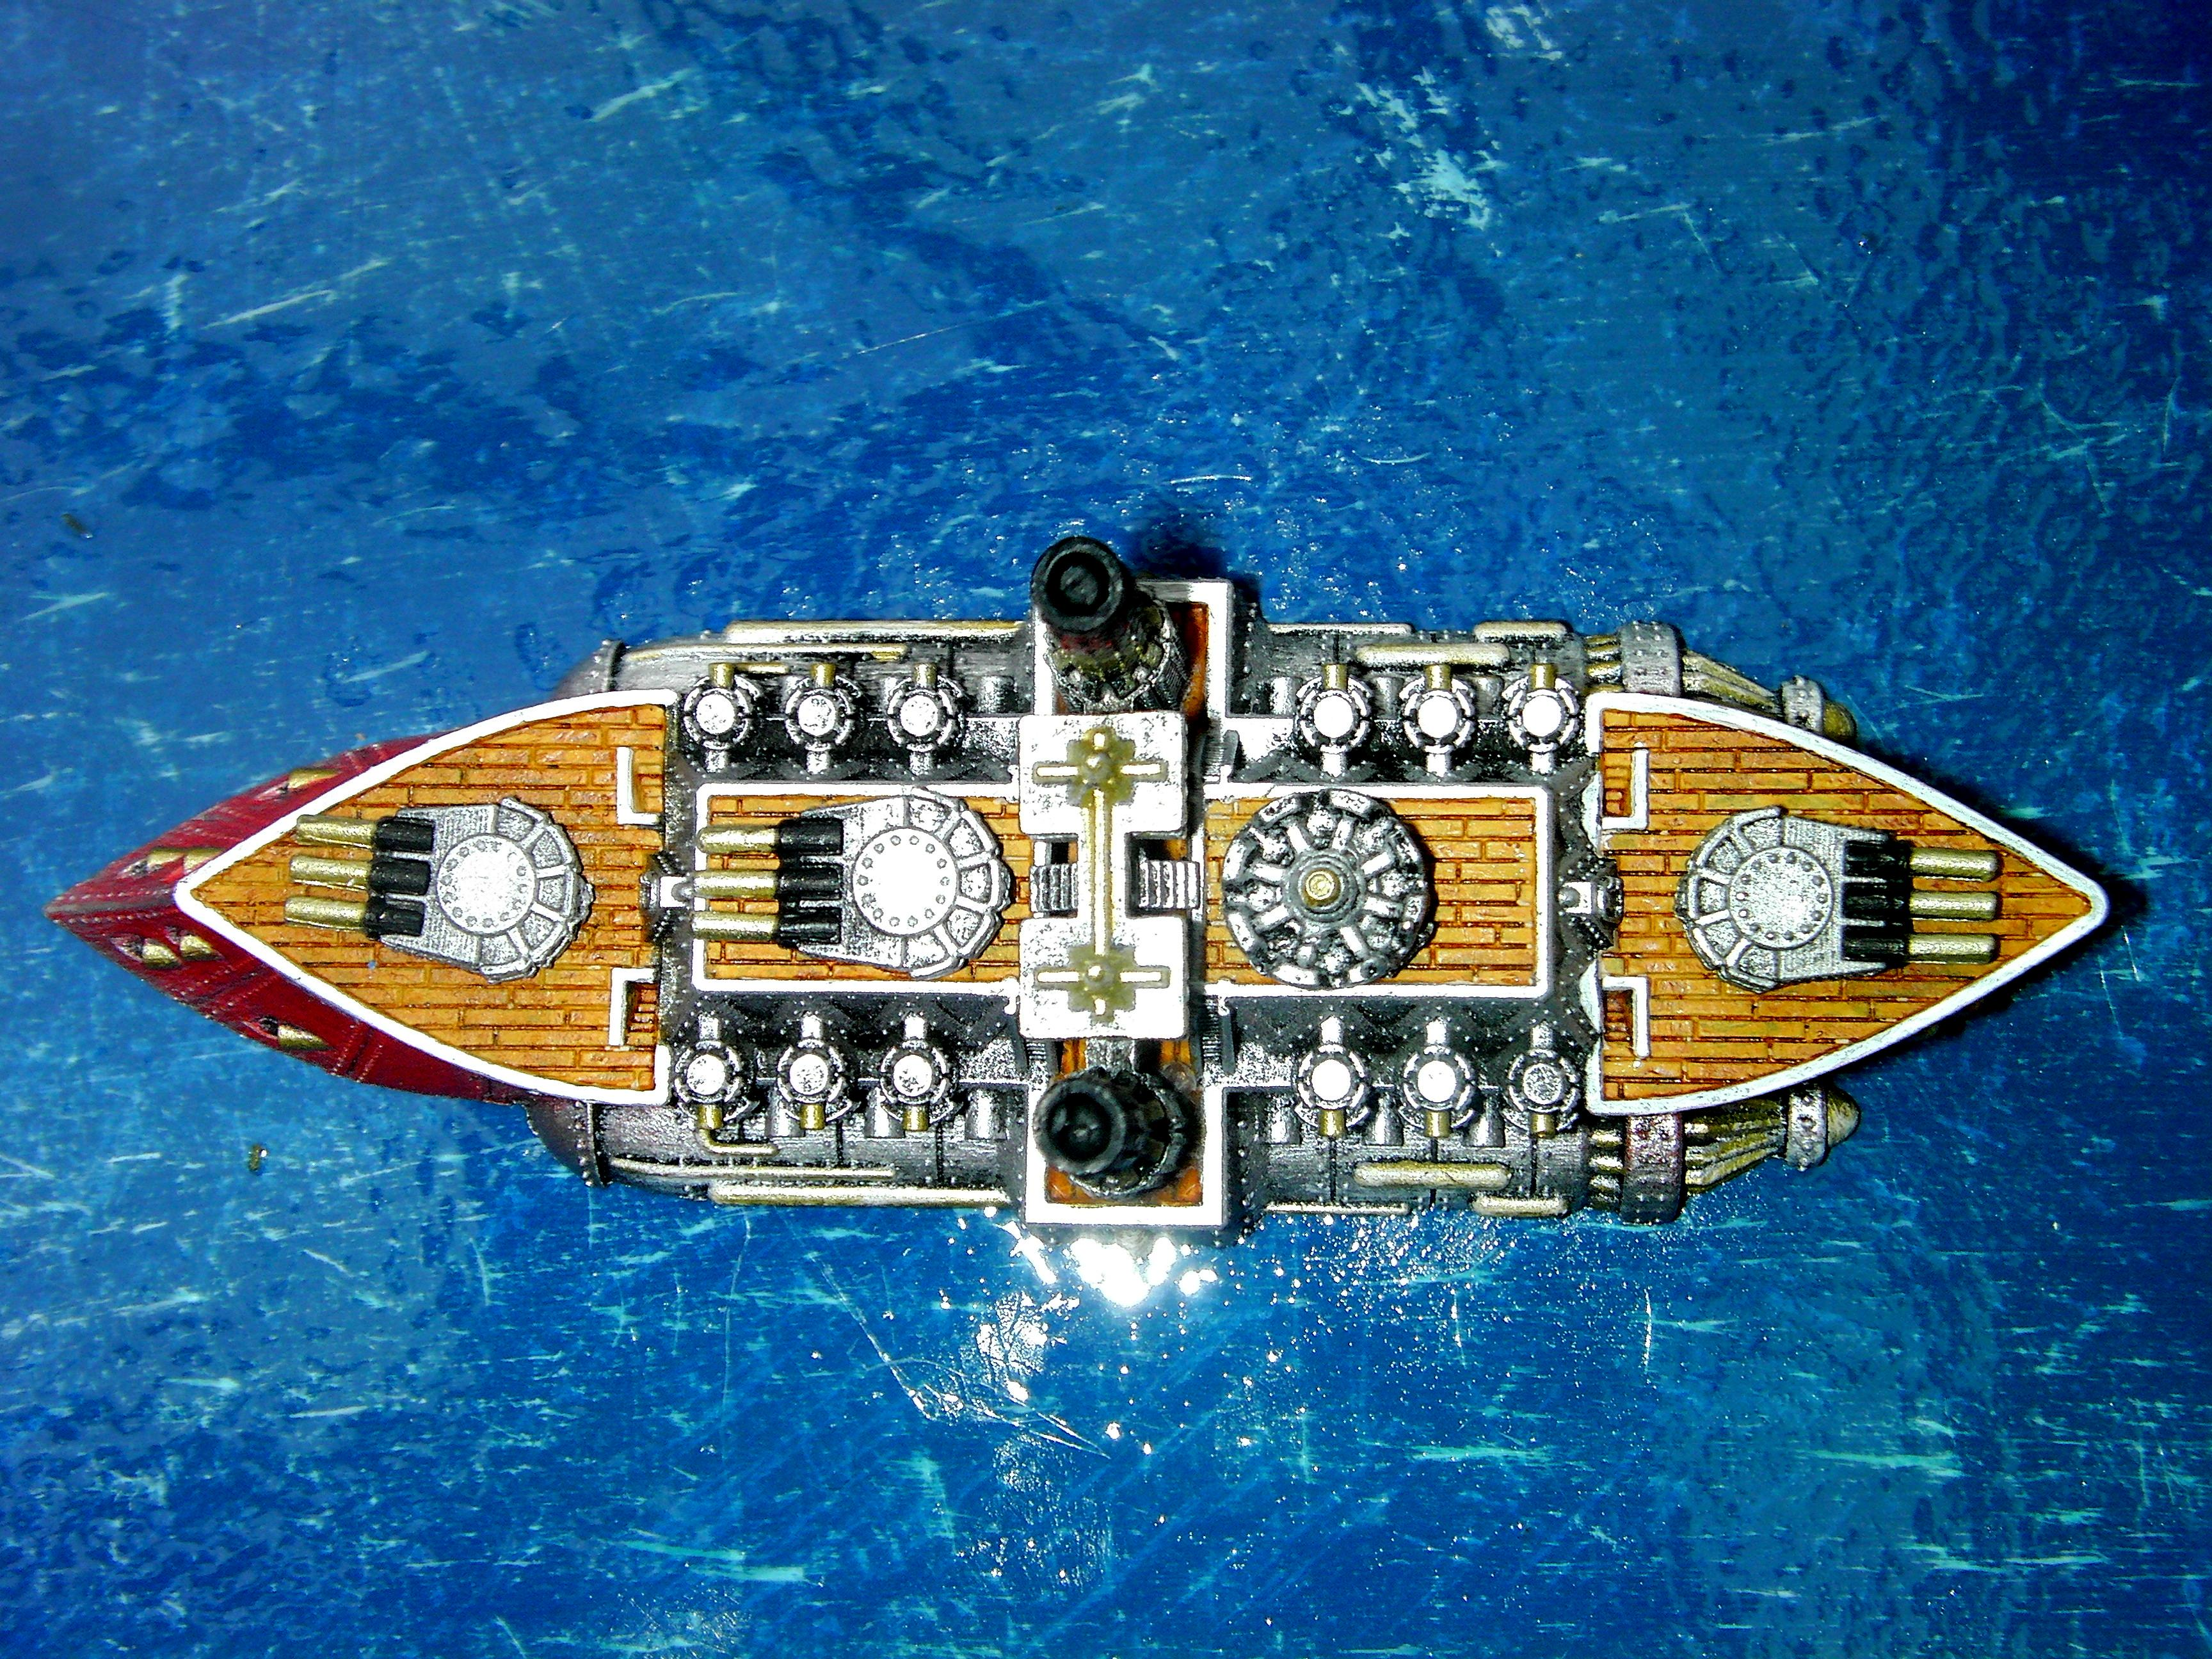 Battleship, Britain, British, Dystopia, Dystopian, Dystopian Wars, Dystopian-wars, England, English, English Battleship, Fleets, Kingdom Of Britannia, Kingdom Of Britannia Battleship, Kob, Ruler, Ruler Class, Sailing, Ships, Spartan Games, War